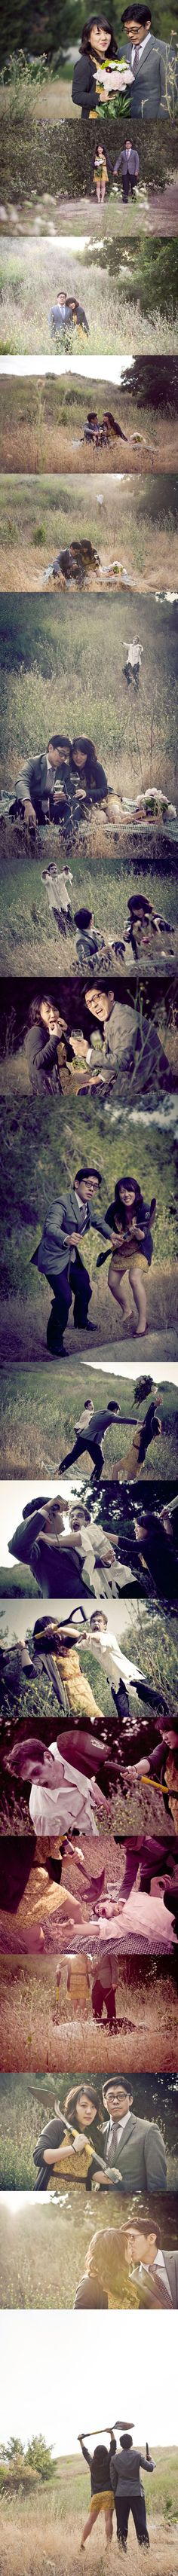 Best engagement pictures of all time